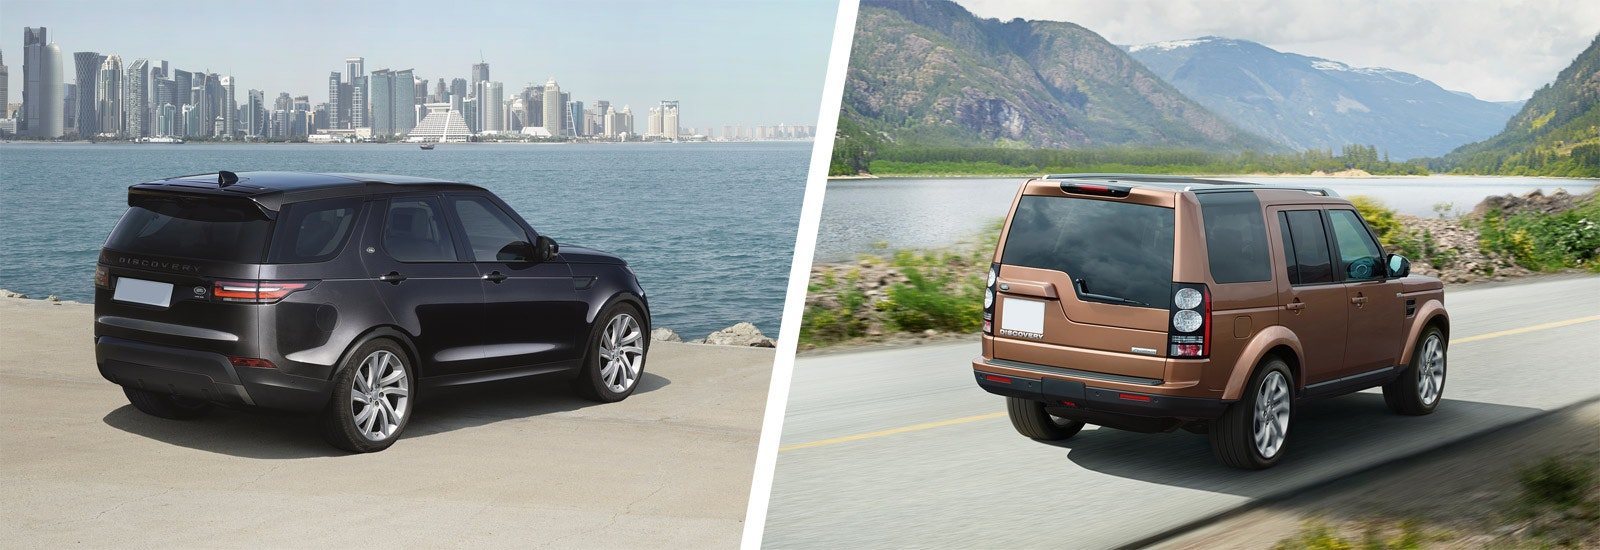 Land Rover Discovery 5 Vs Discovery 4 Old Vs New Carwow